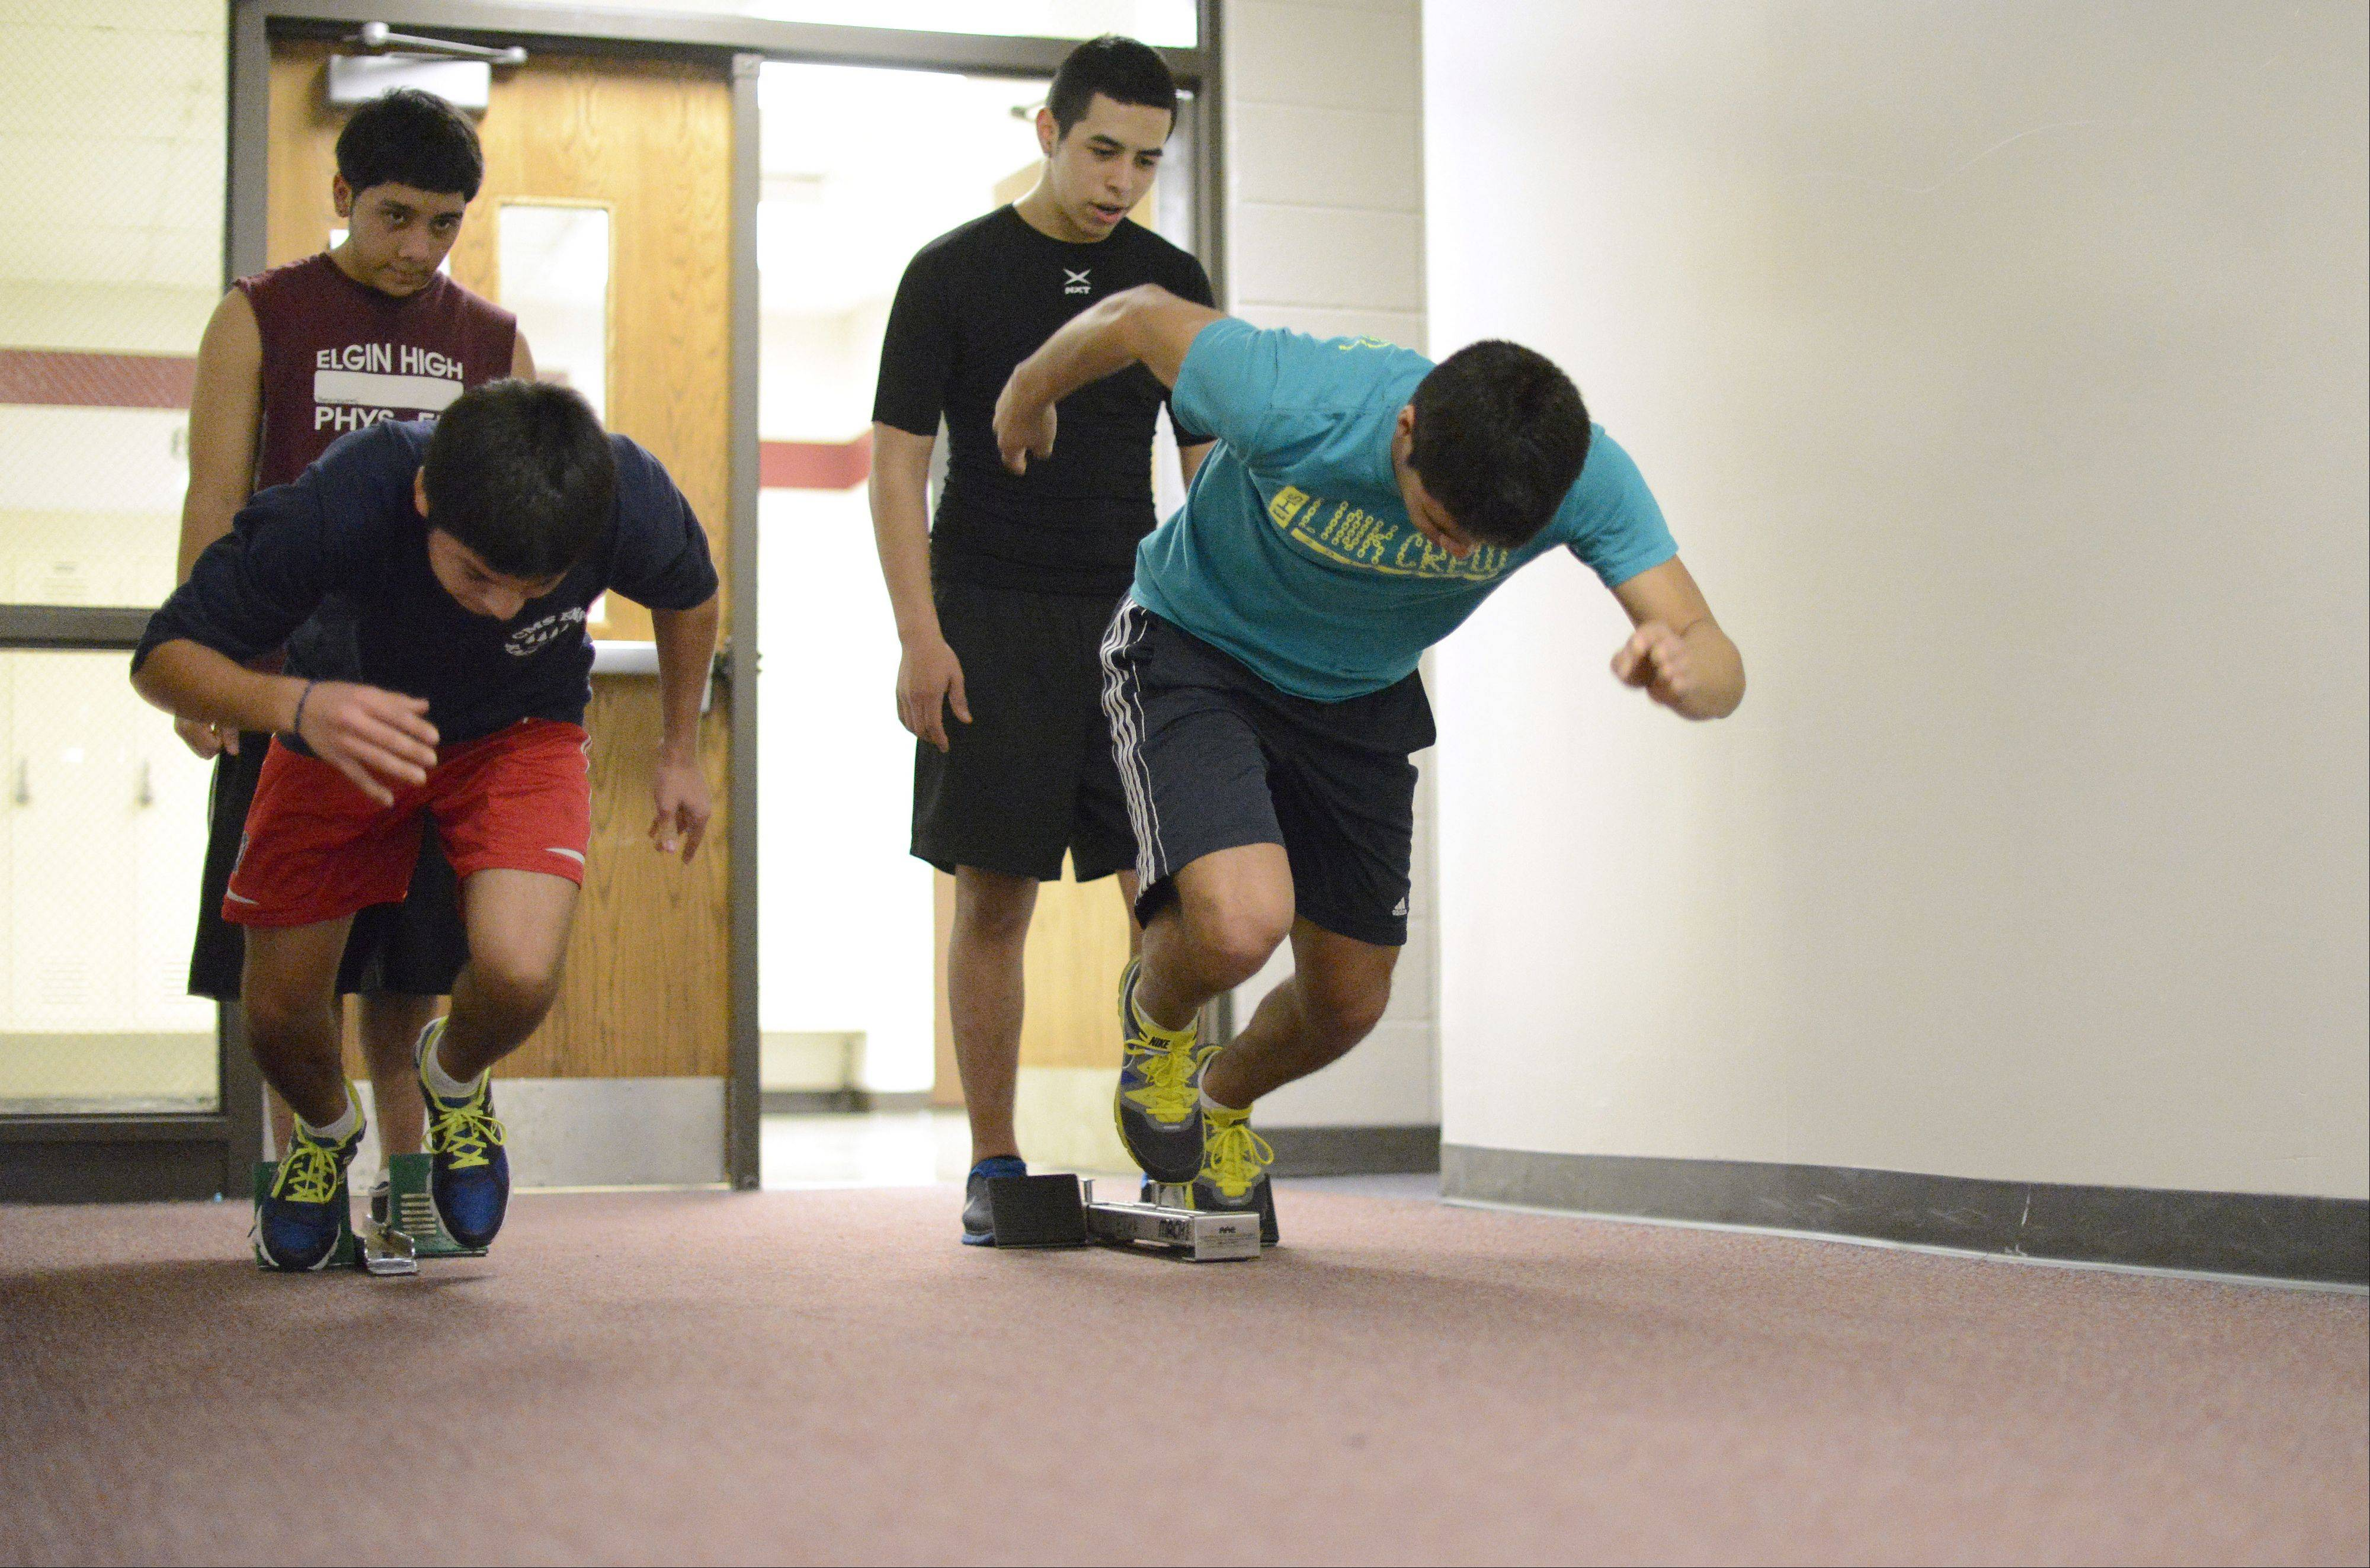 Eduardo Perez, a Elgin High School senior, has accepted a four-year scholarship to Stanford University. He's a success away from the classroom as well, serving twice as captain of the high school's soccer team and competing in track and swimming.